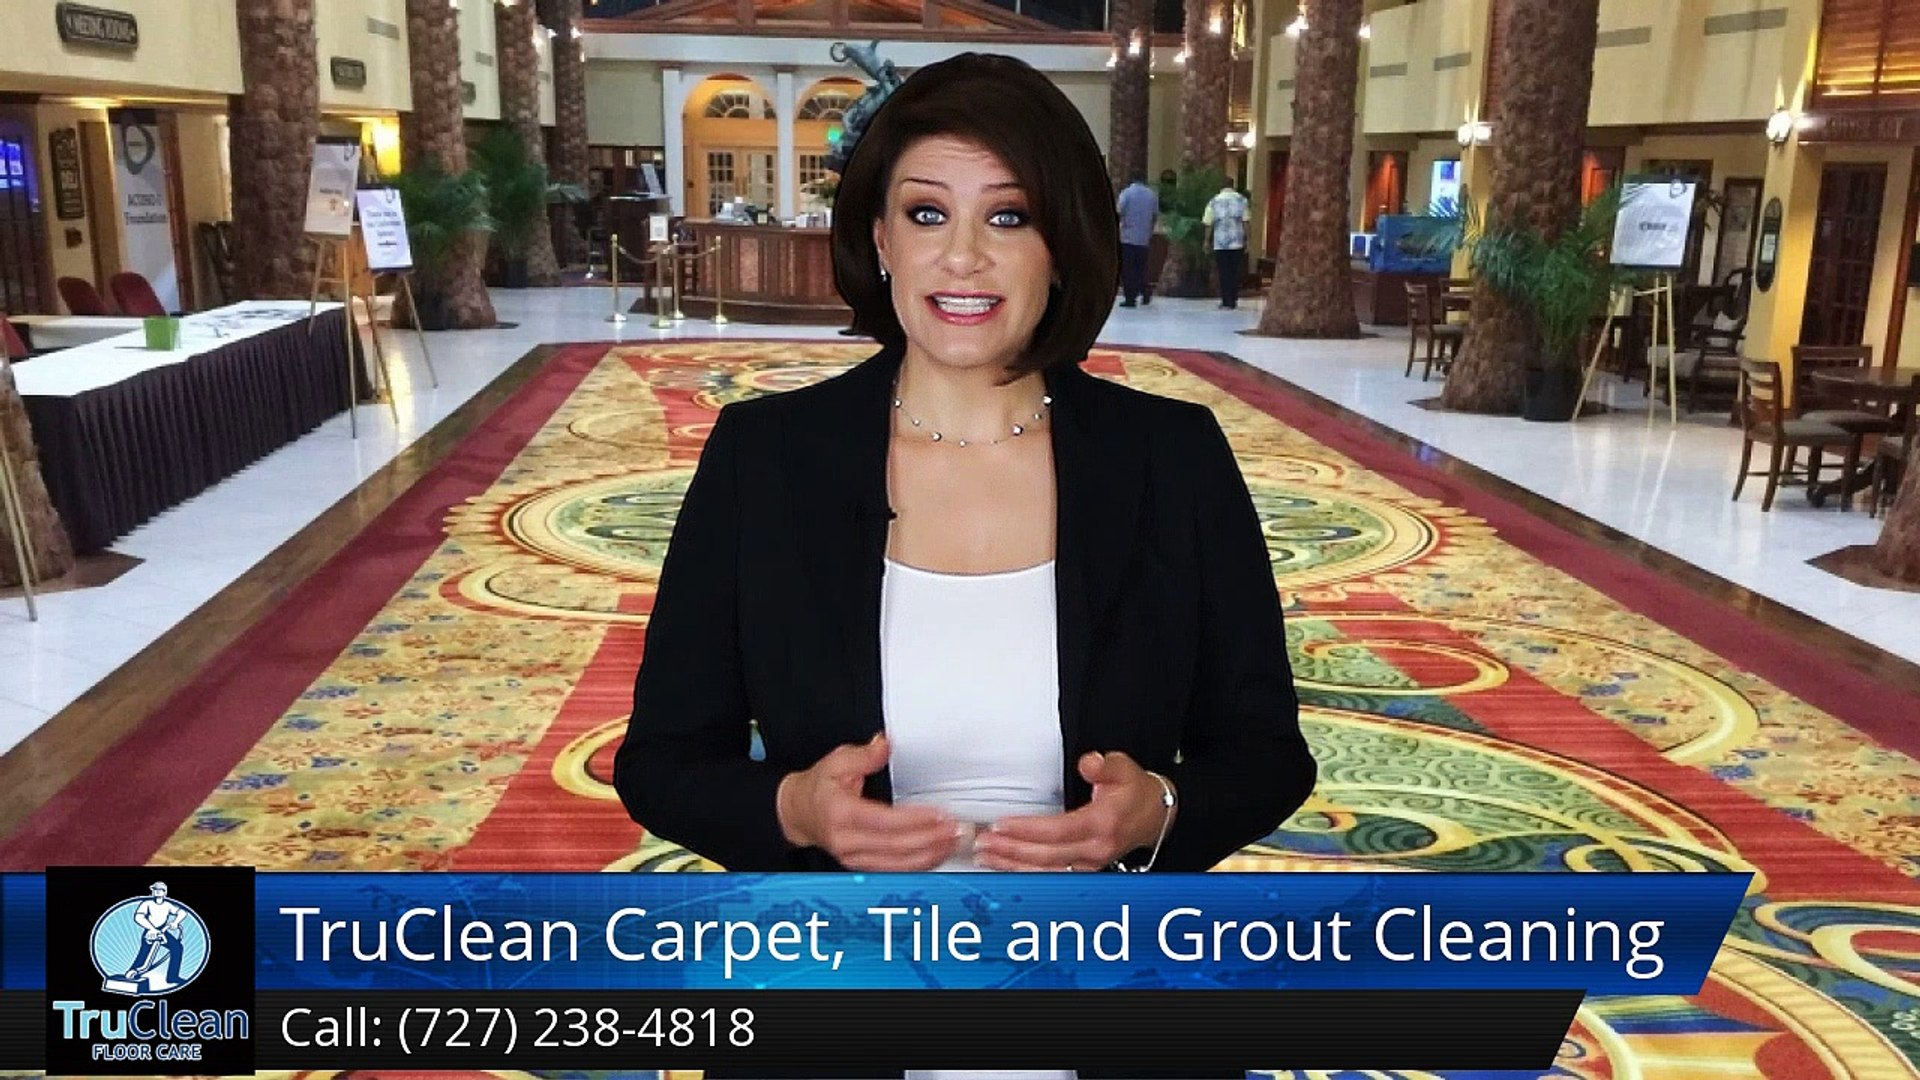 Clearwater FL Tile & Grout Cleaning Reviews, TruClean Floor Care Clearwater, Commercial Tile &am